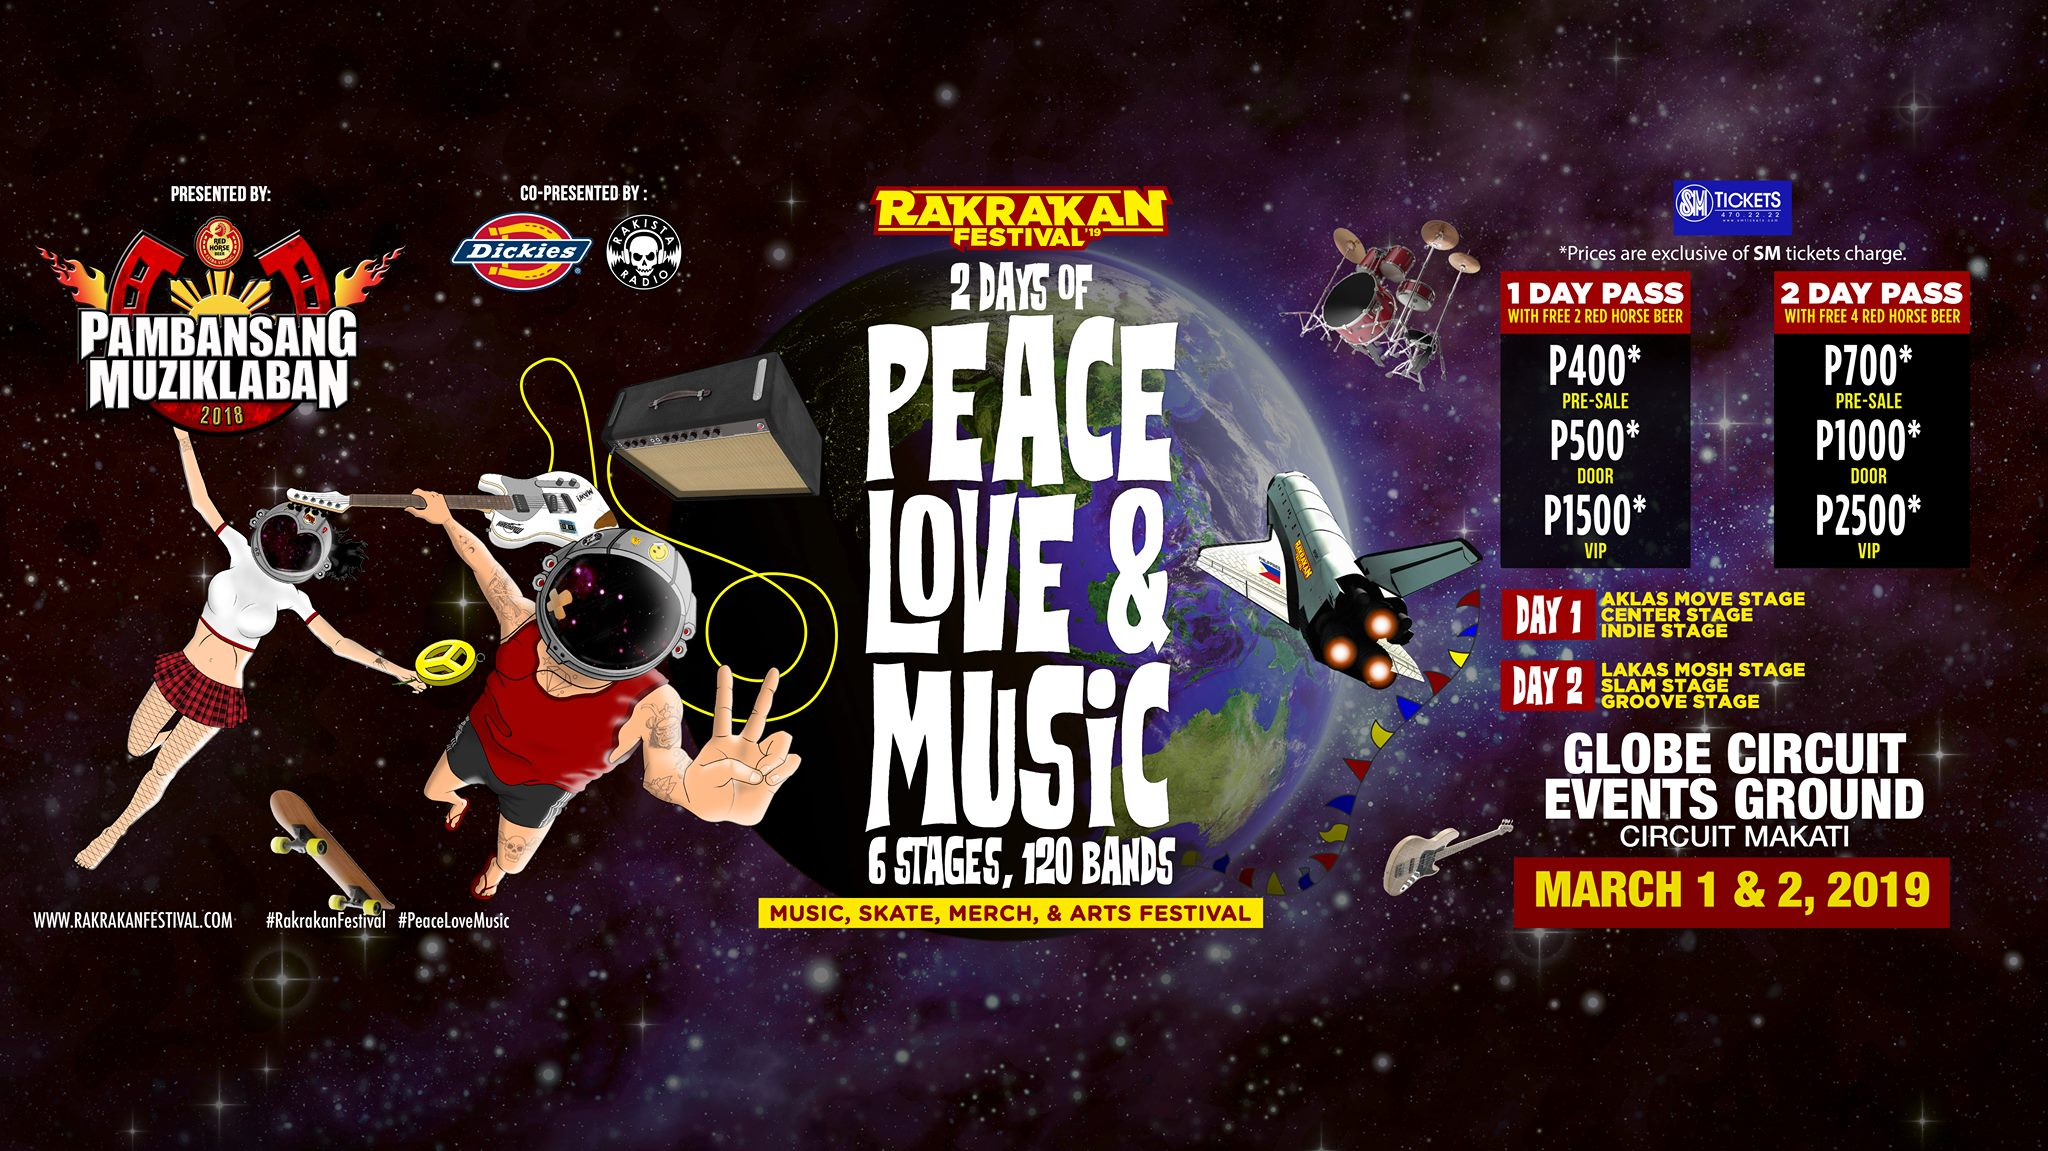 Rakrakan Festival 2019: Peace, Love, & Music